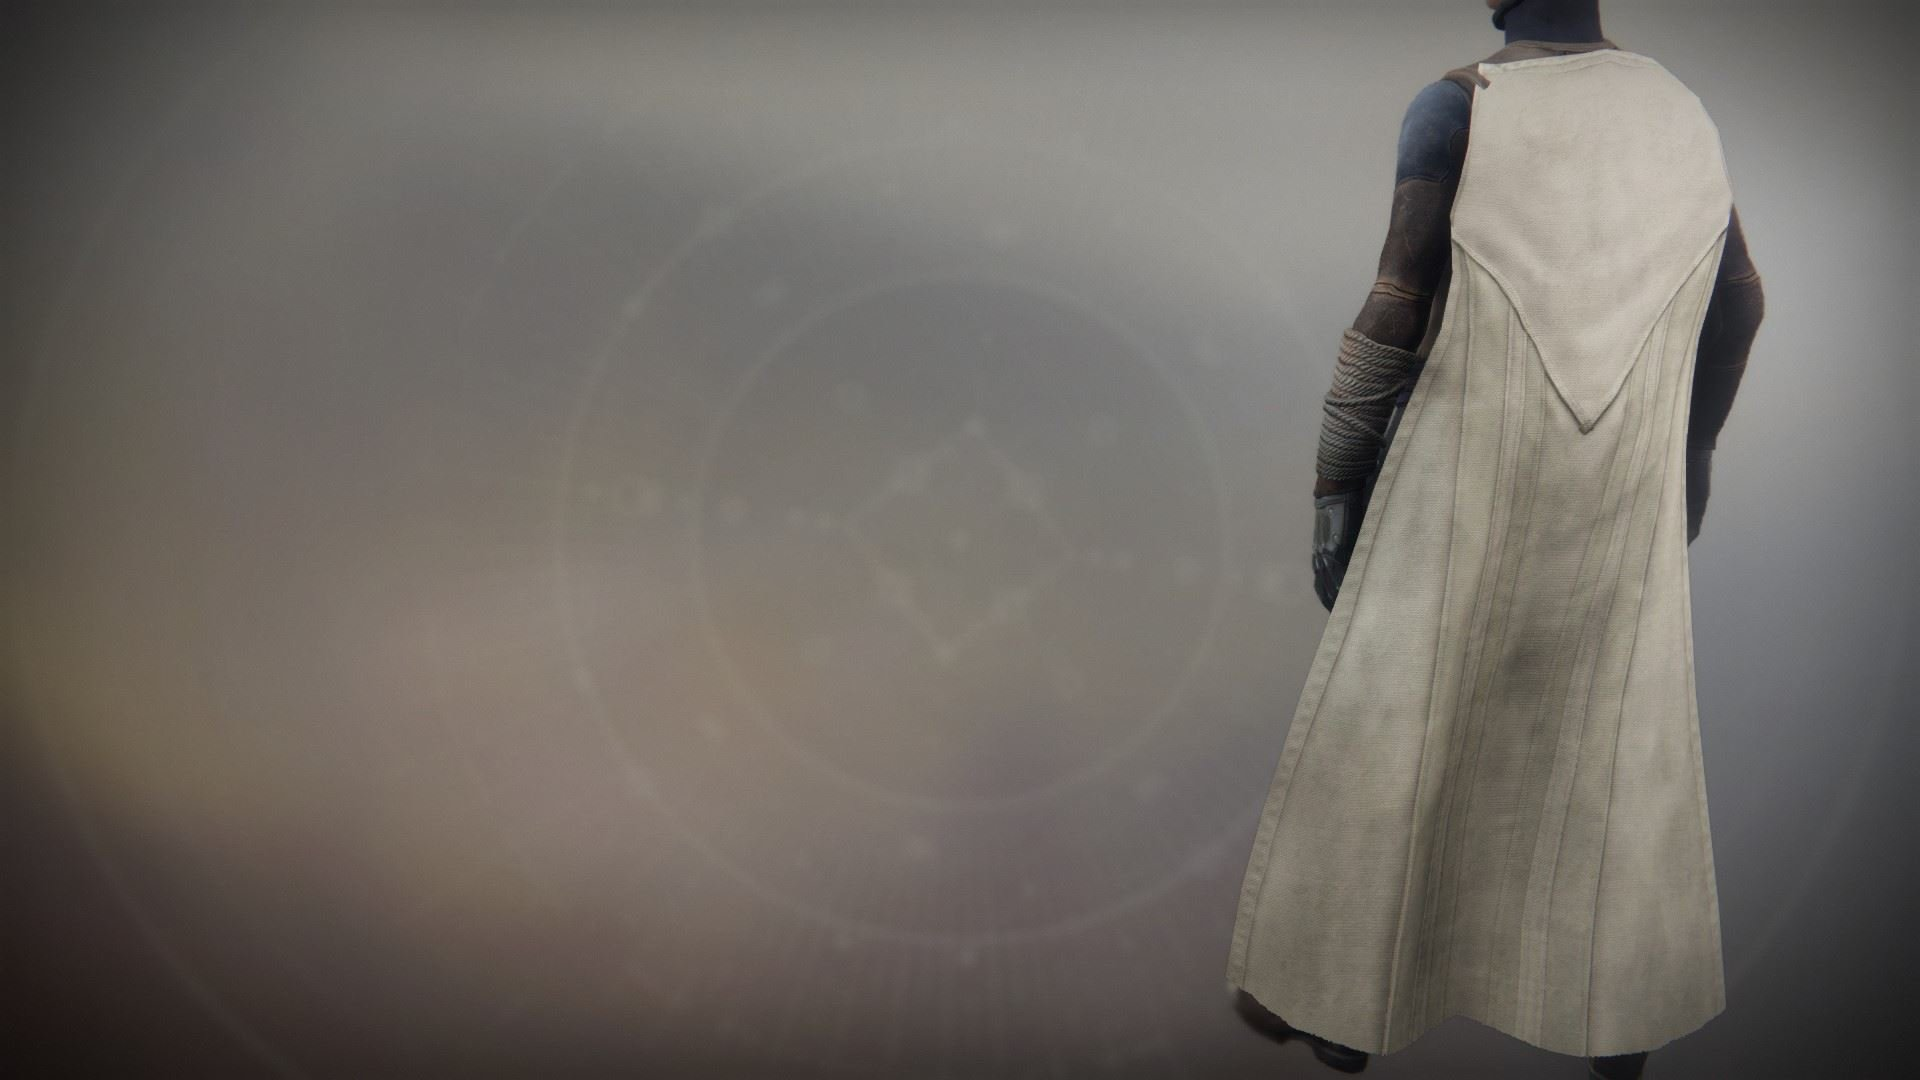 An in-game render of the Solstice Cloak (Rekindled).